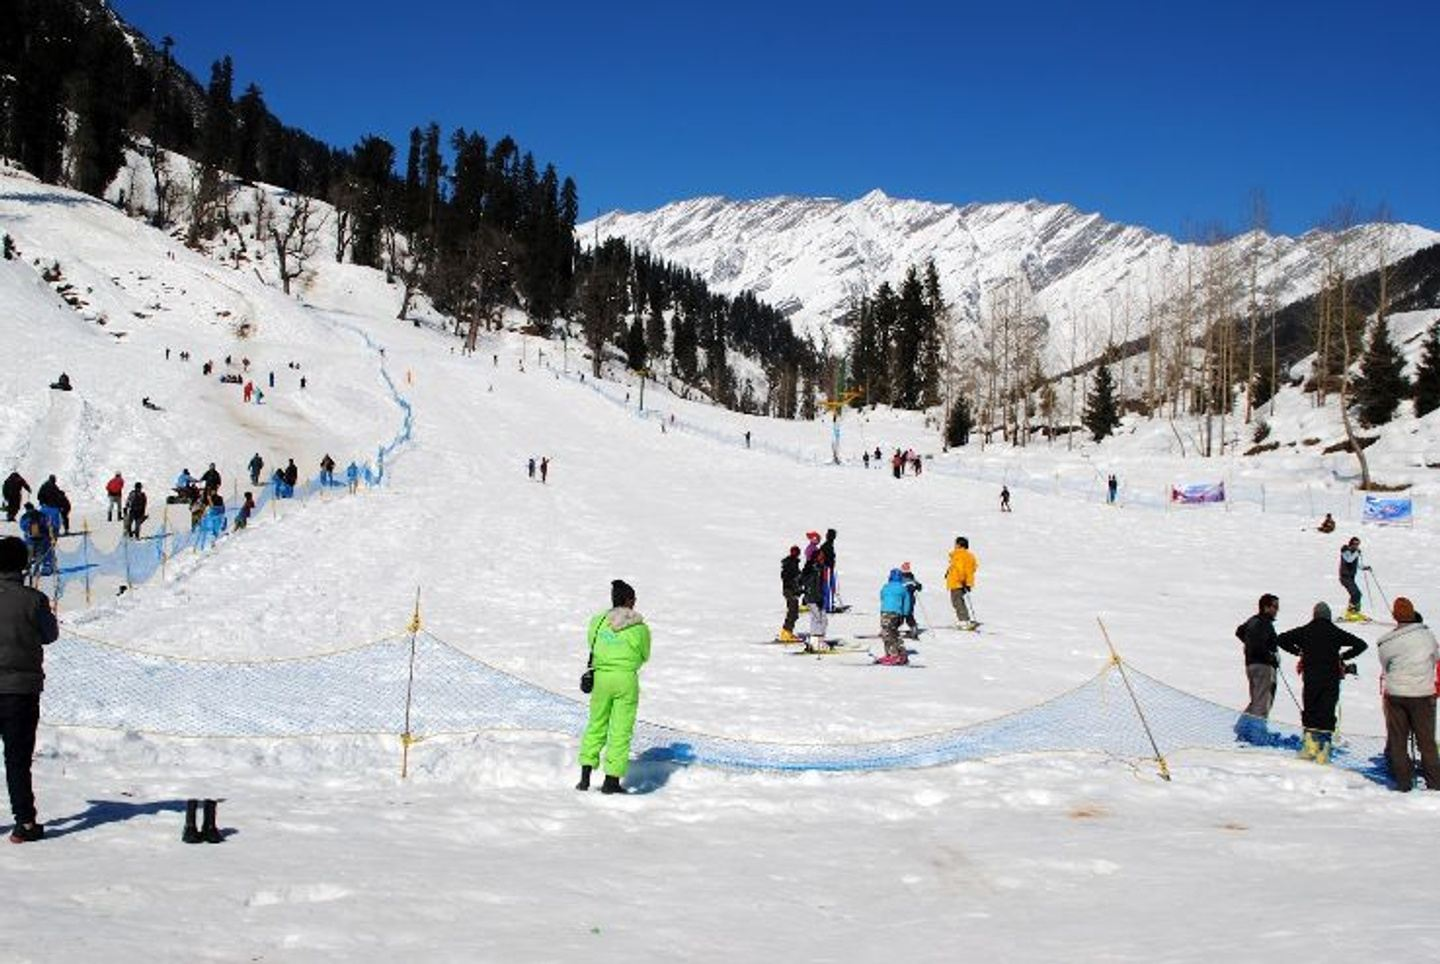 Take a bus to the Top 3 Travel Experiences of India